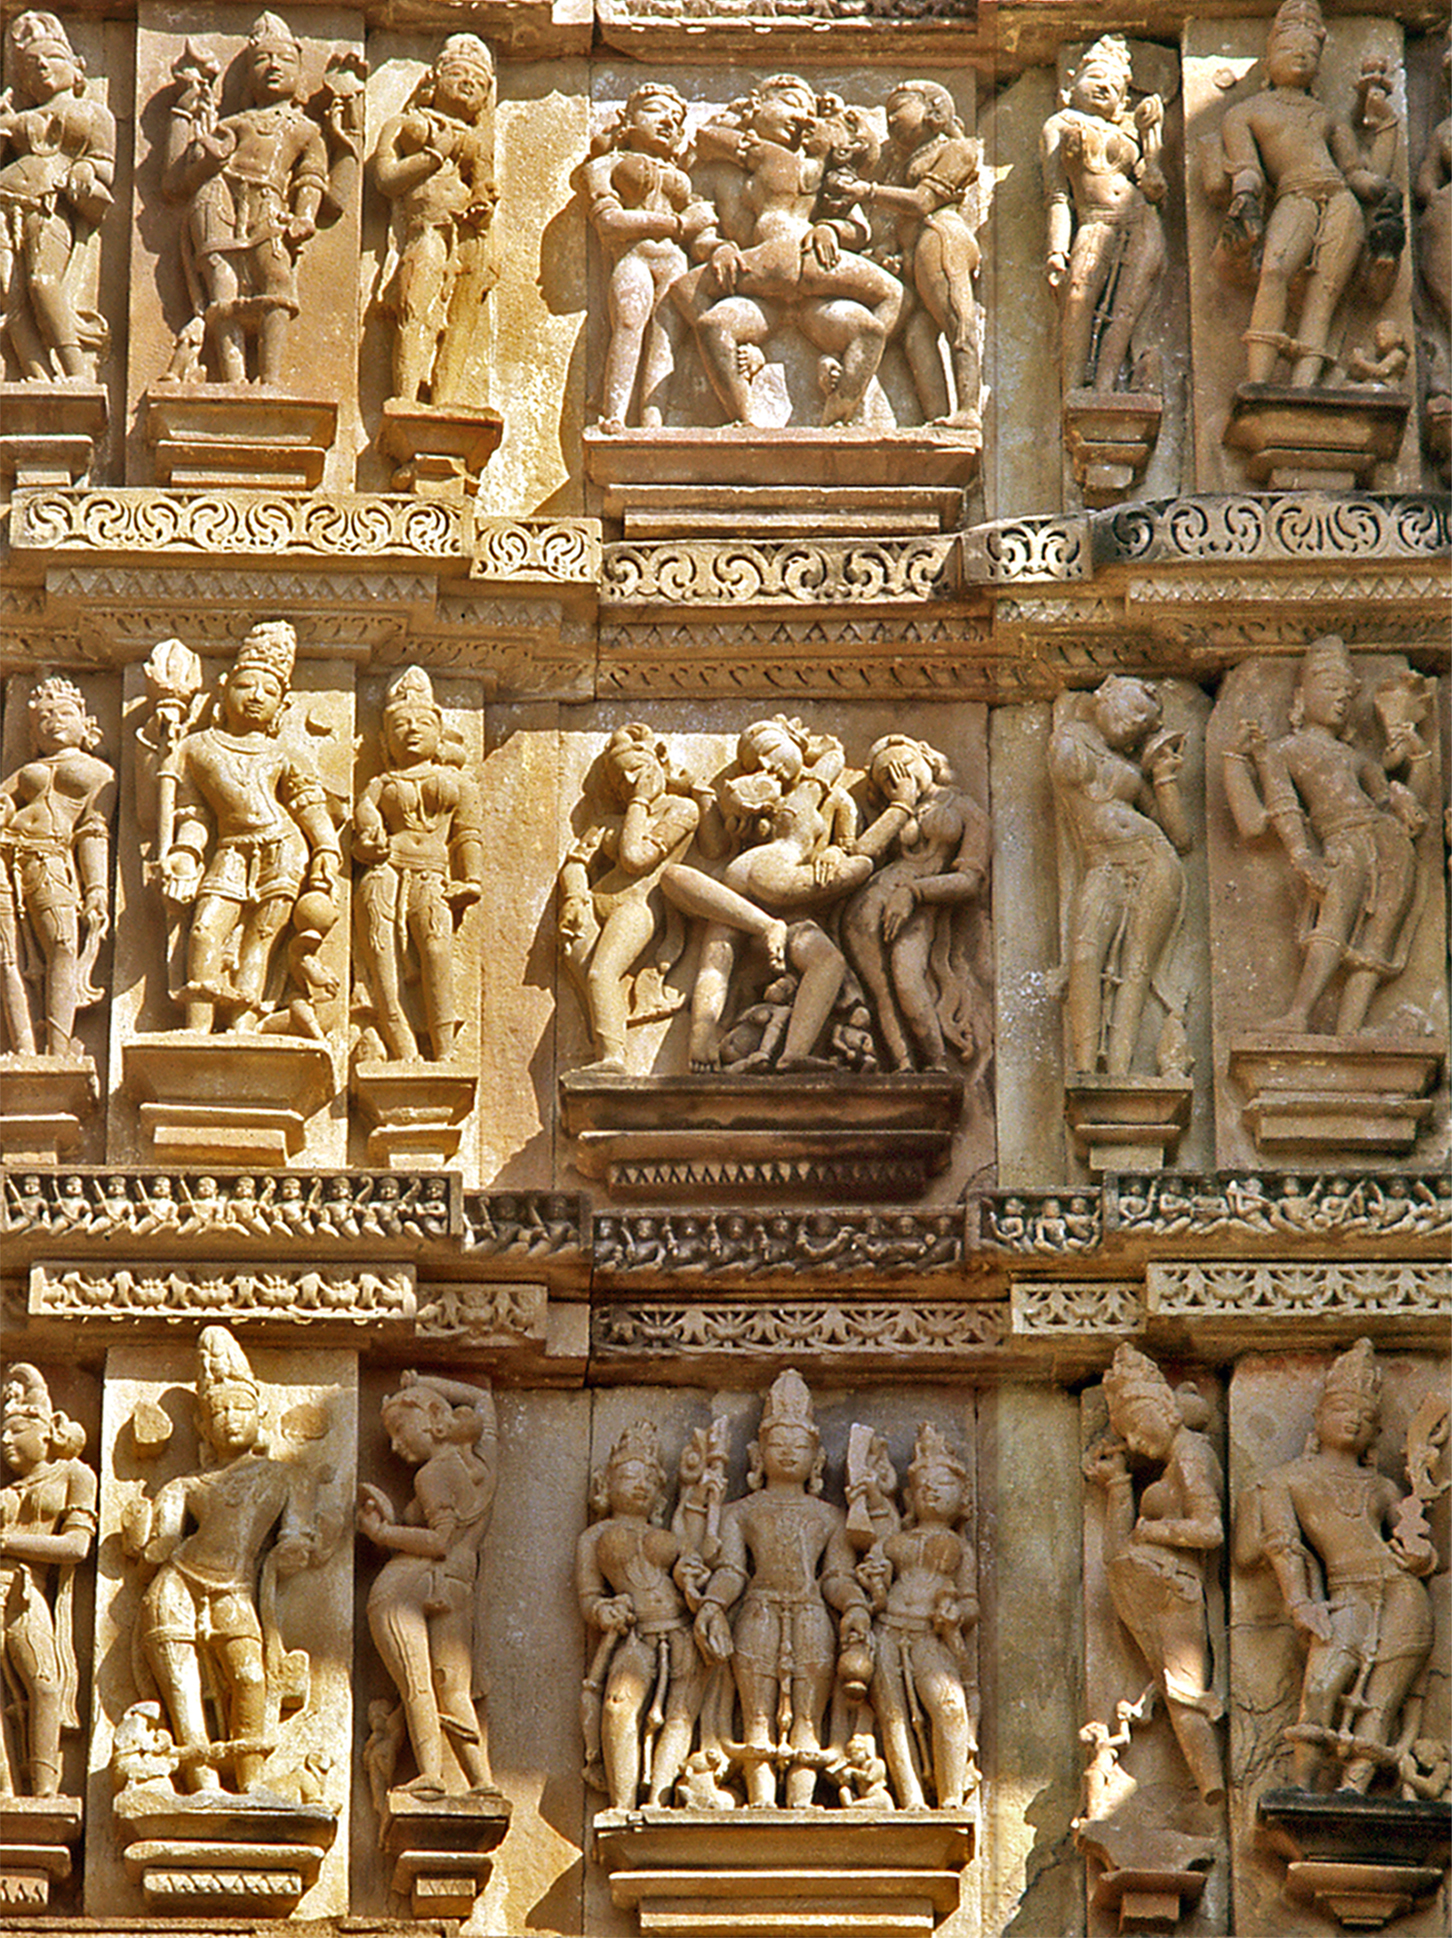 History Of Us Science Fiction And Fantasy Magazines To: The Temples Of Khajuraho